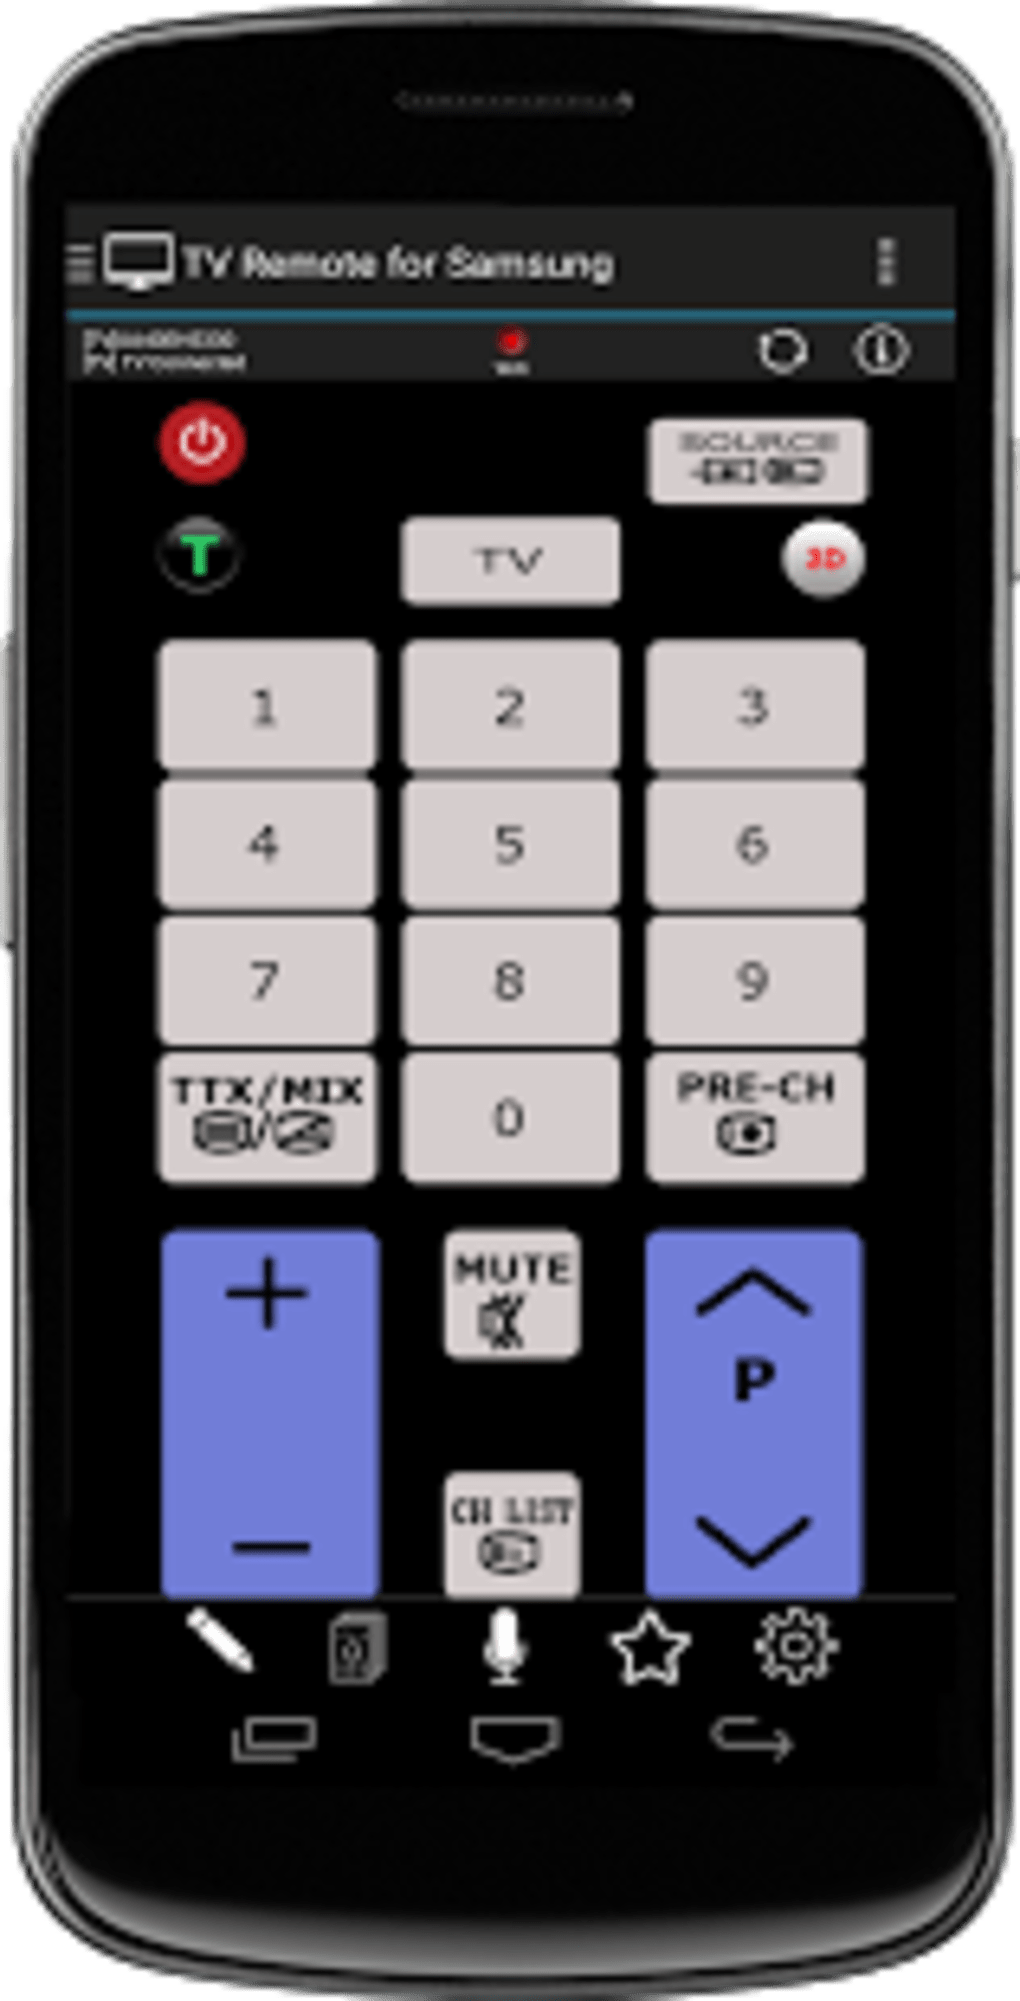 TV Remote for Samsung Smart TV Remote Control for Android